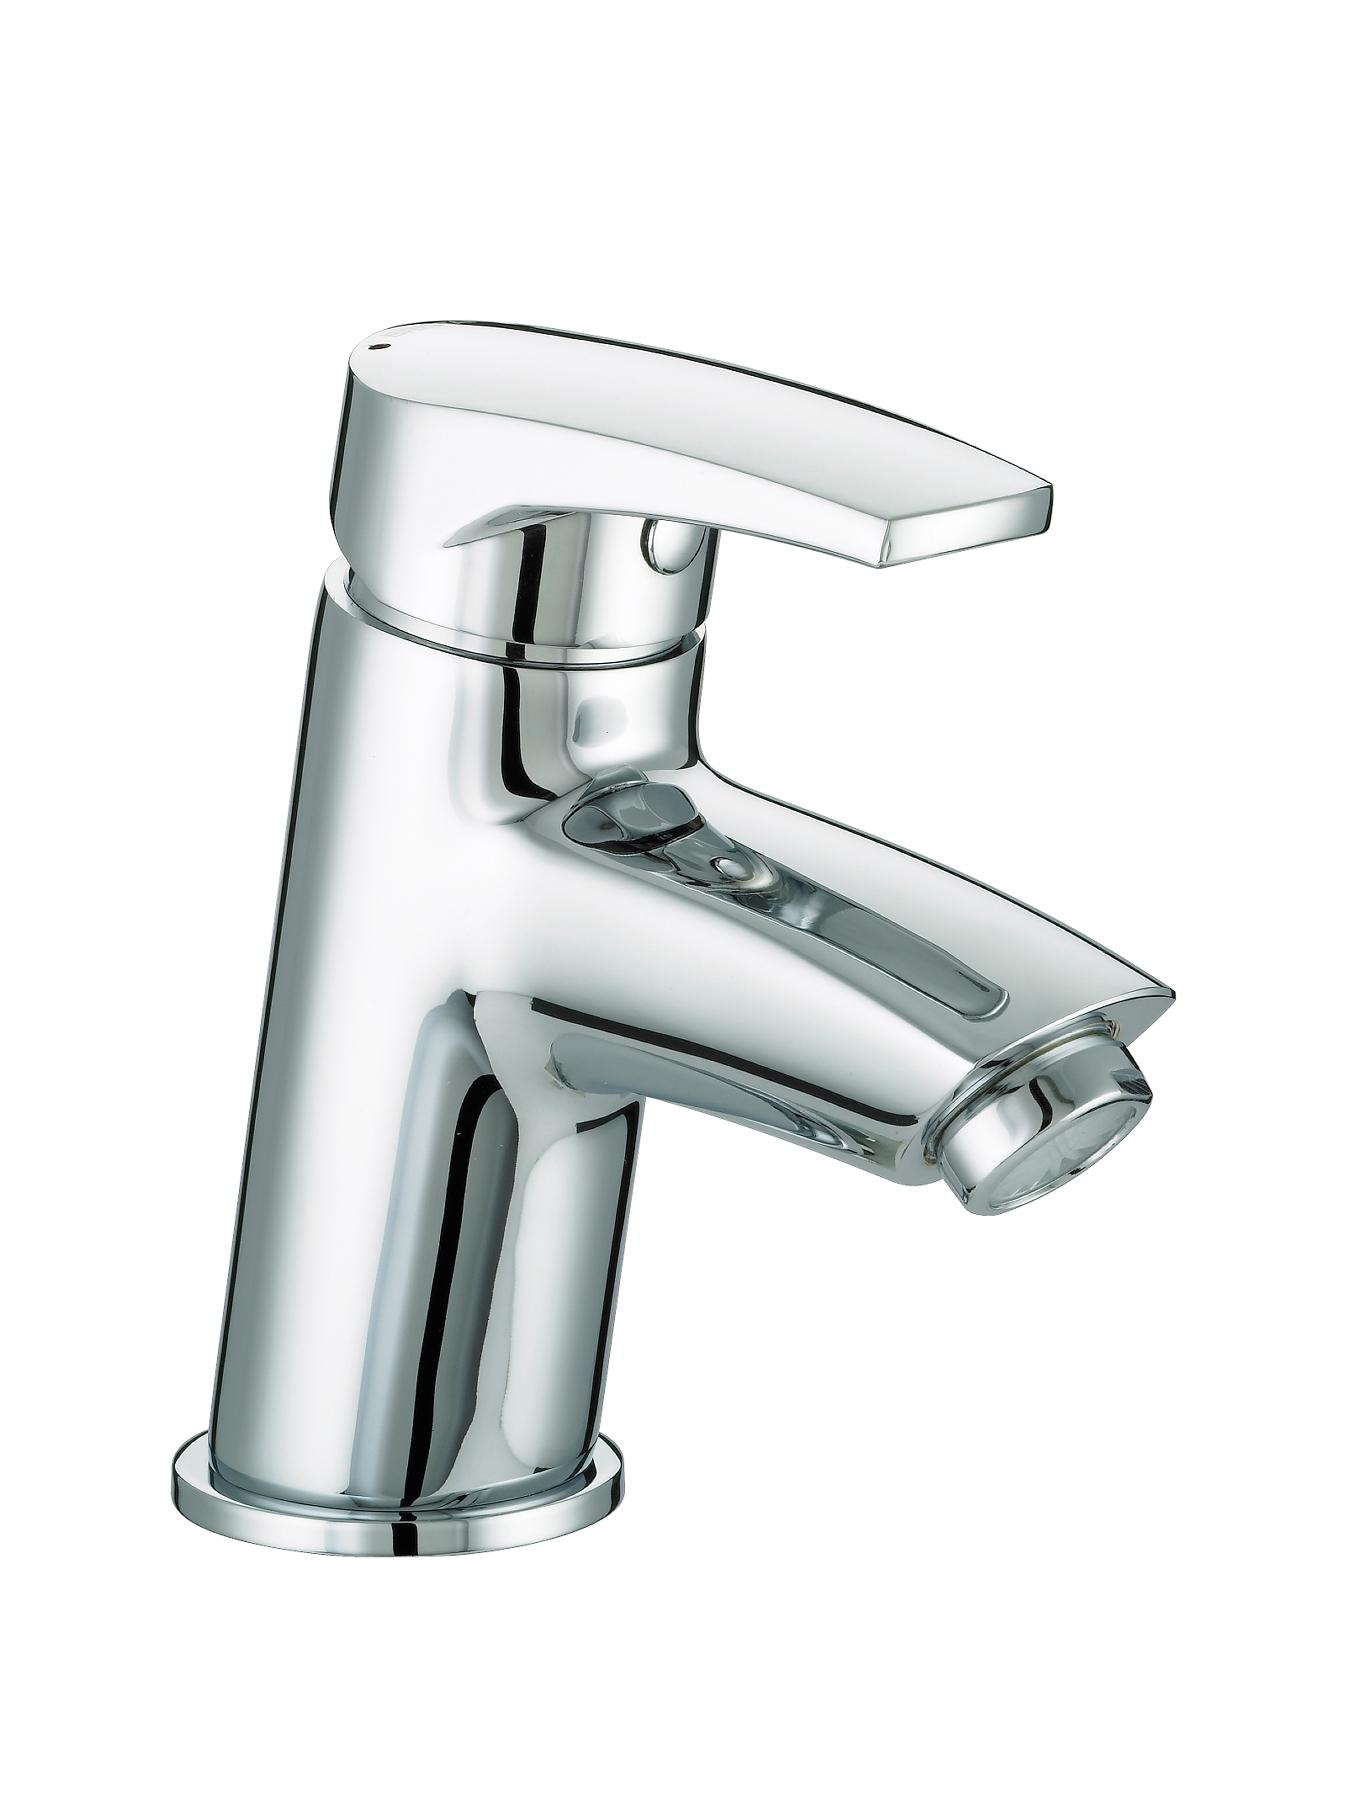 Bristan Orta Basin Mixer Tap - Chrome